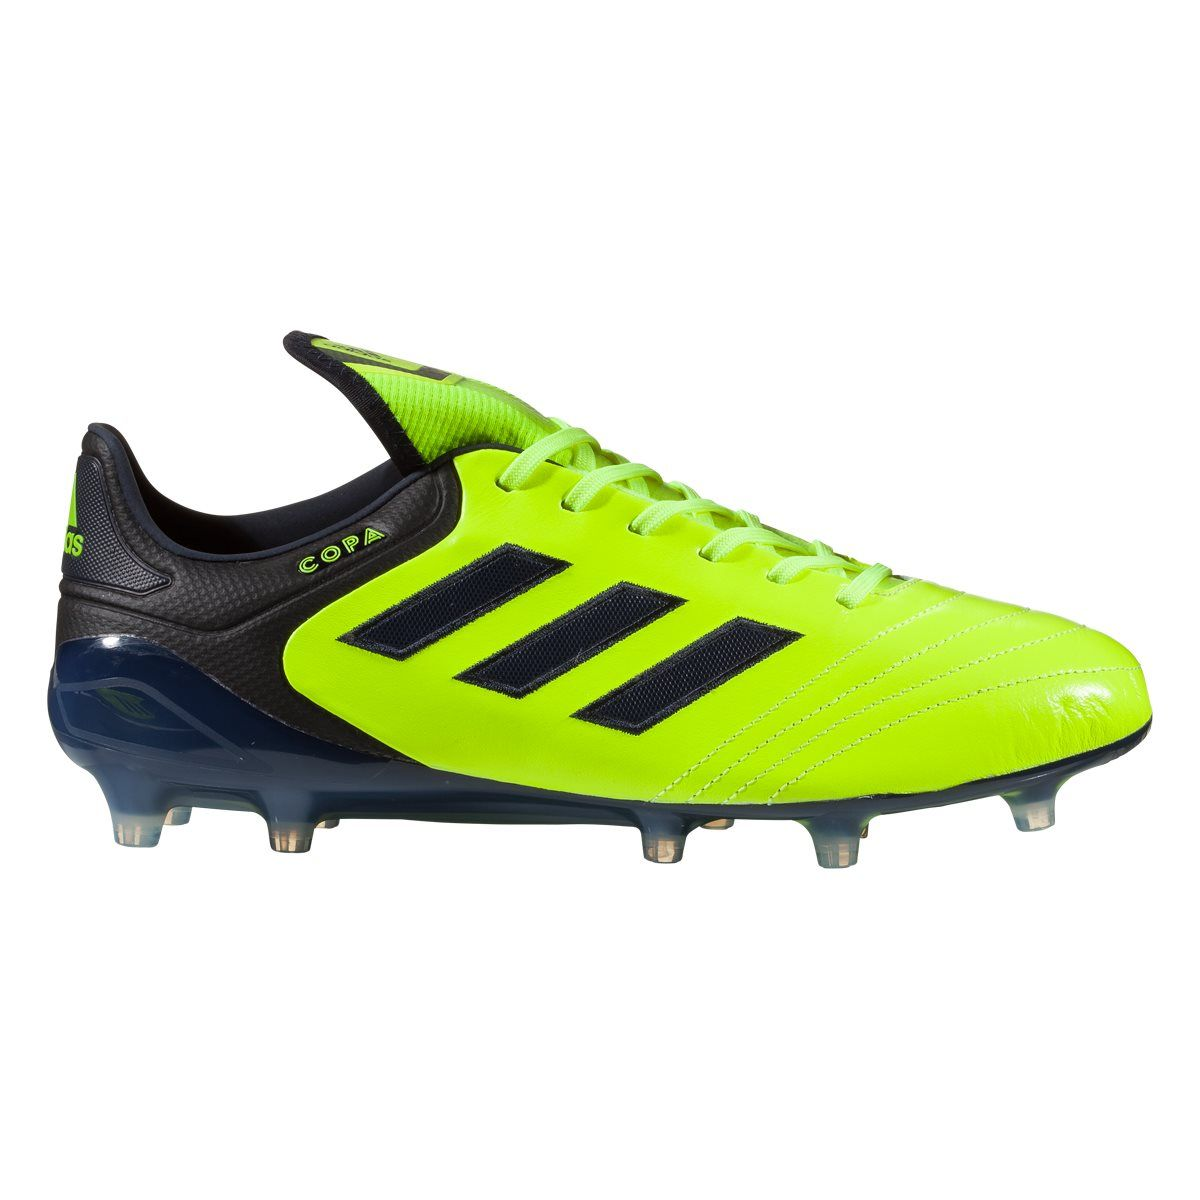 89d7da86427dea adidas Copa 17.1 FG Soccer Cleats | Launches: Footwear | Soccer ...